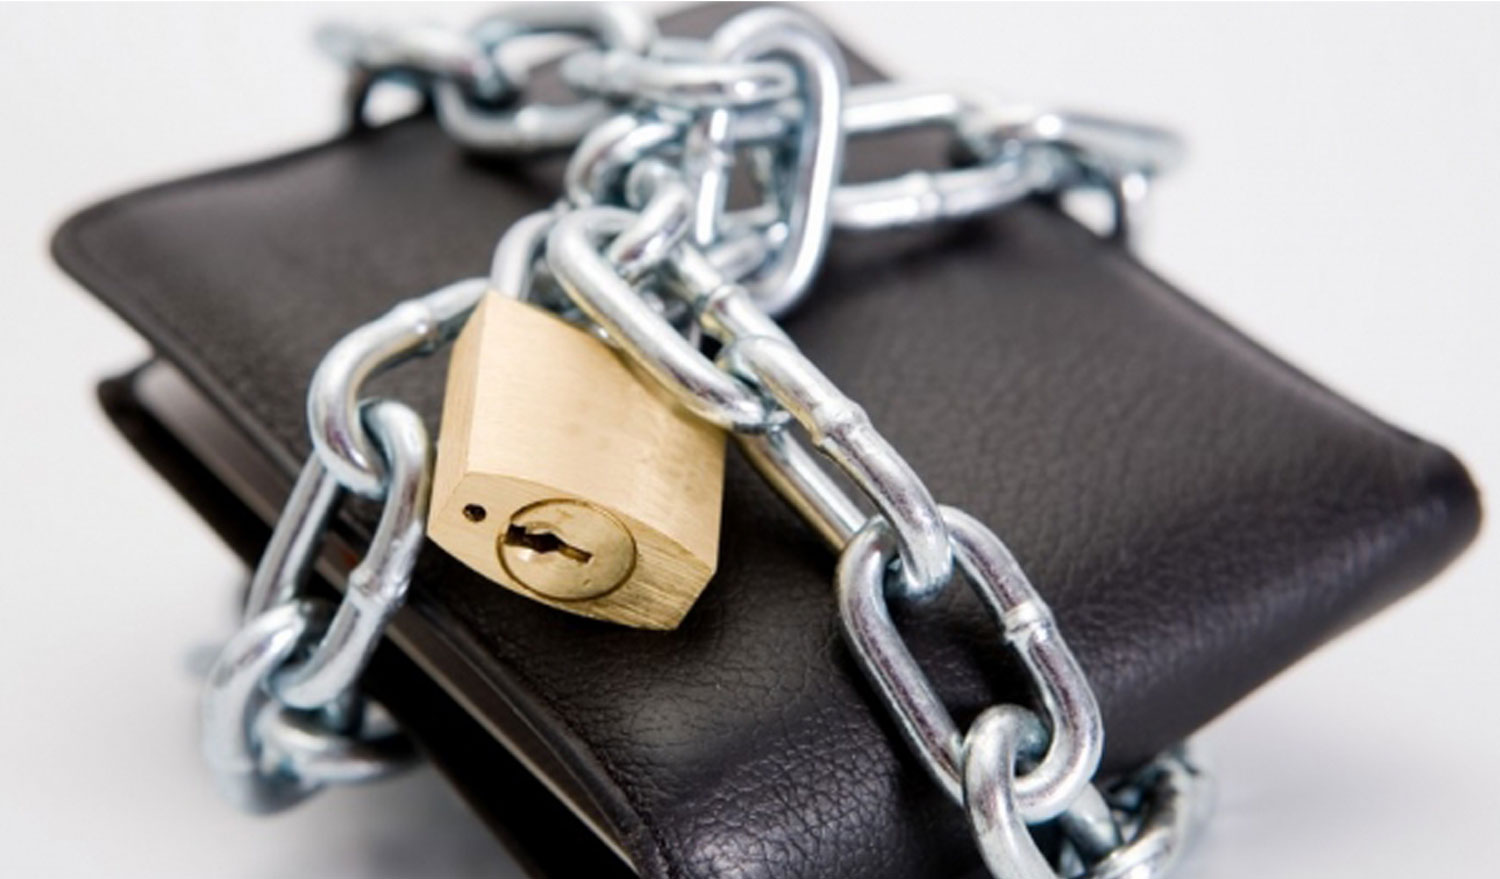 Chained up wallet; tax relief means you avoid levies, garnishments and seizures.